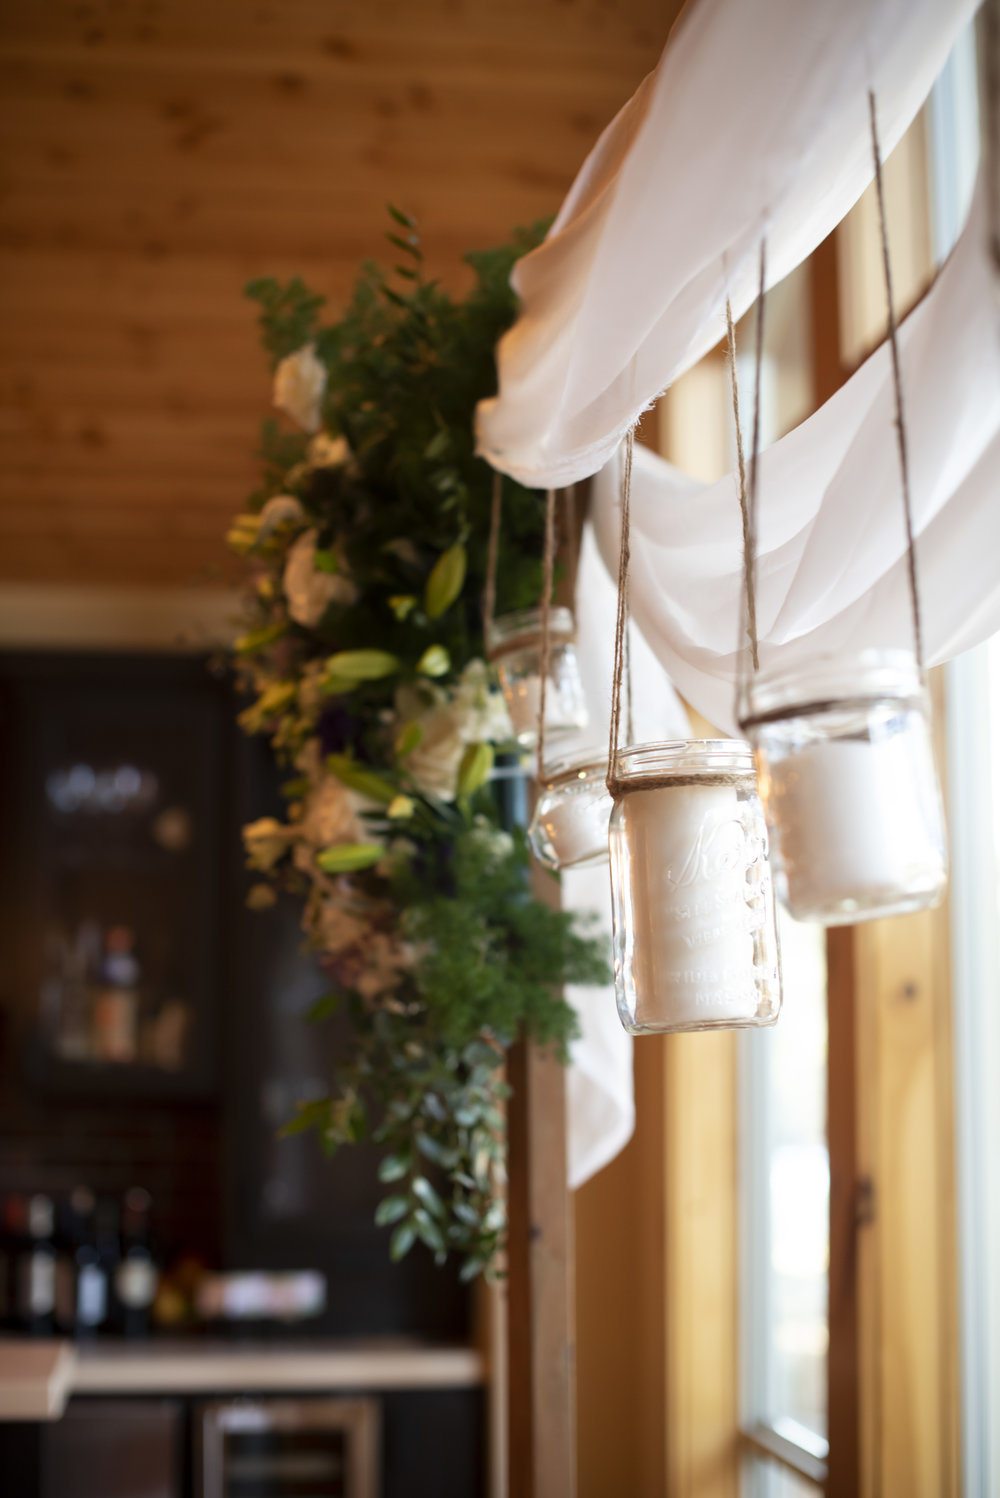 Custom Arbor Arrangements and Floral Creations by Bend Floral Artistry. Sunriver Oregon private residence. Photo by:  WildTeacup.com  Jennifer Whelan